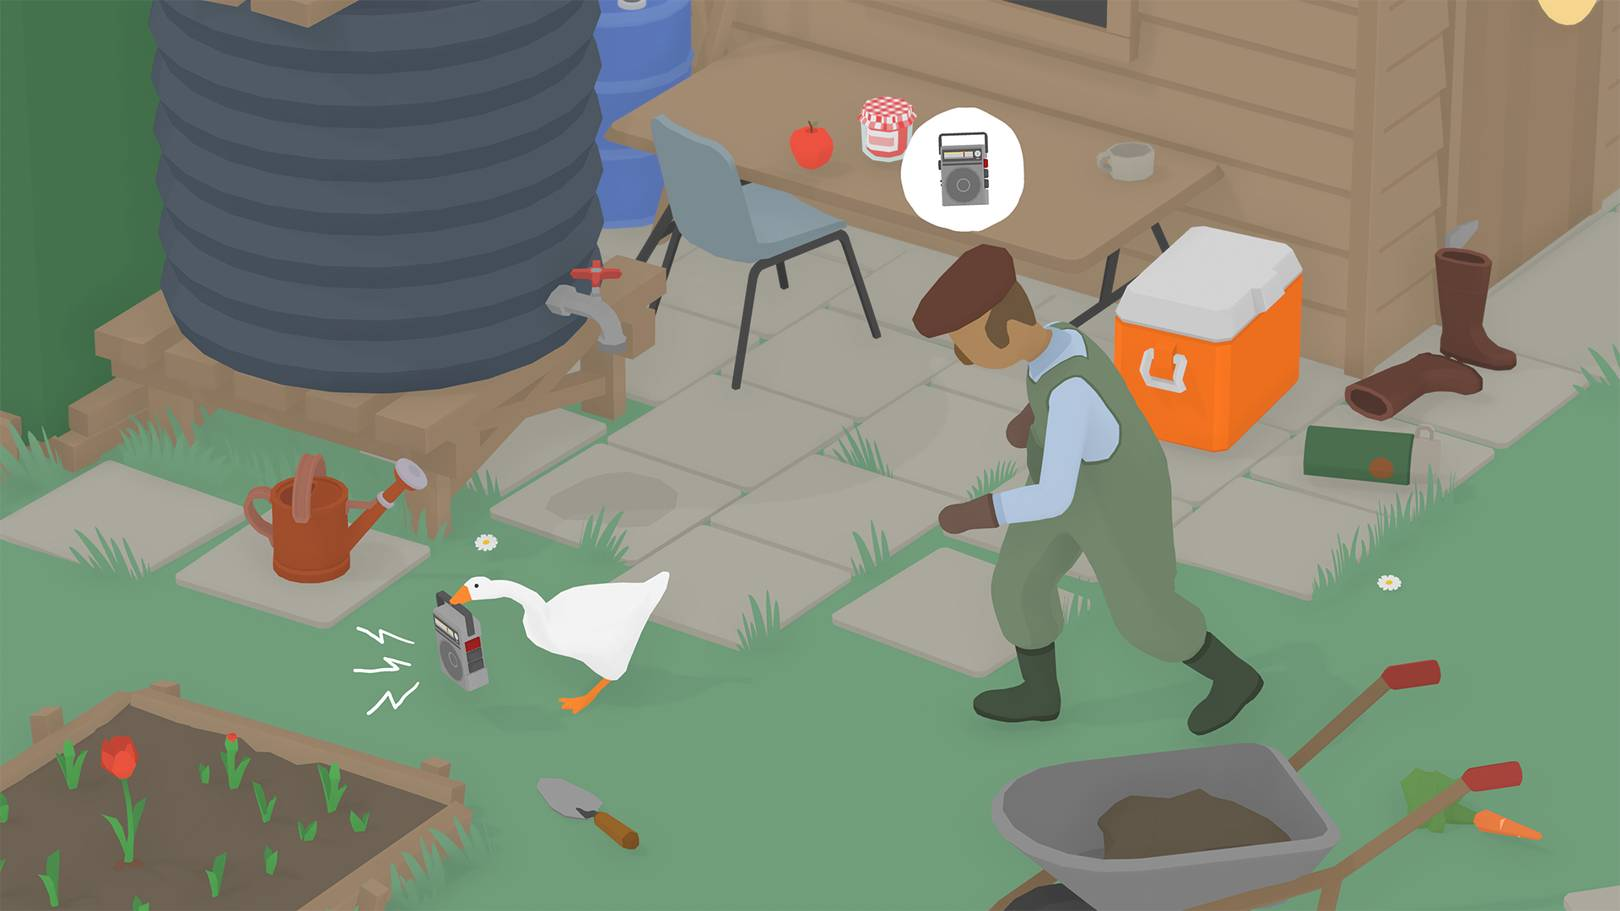 Untitled Goose Game actually lives up to the viral hype